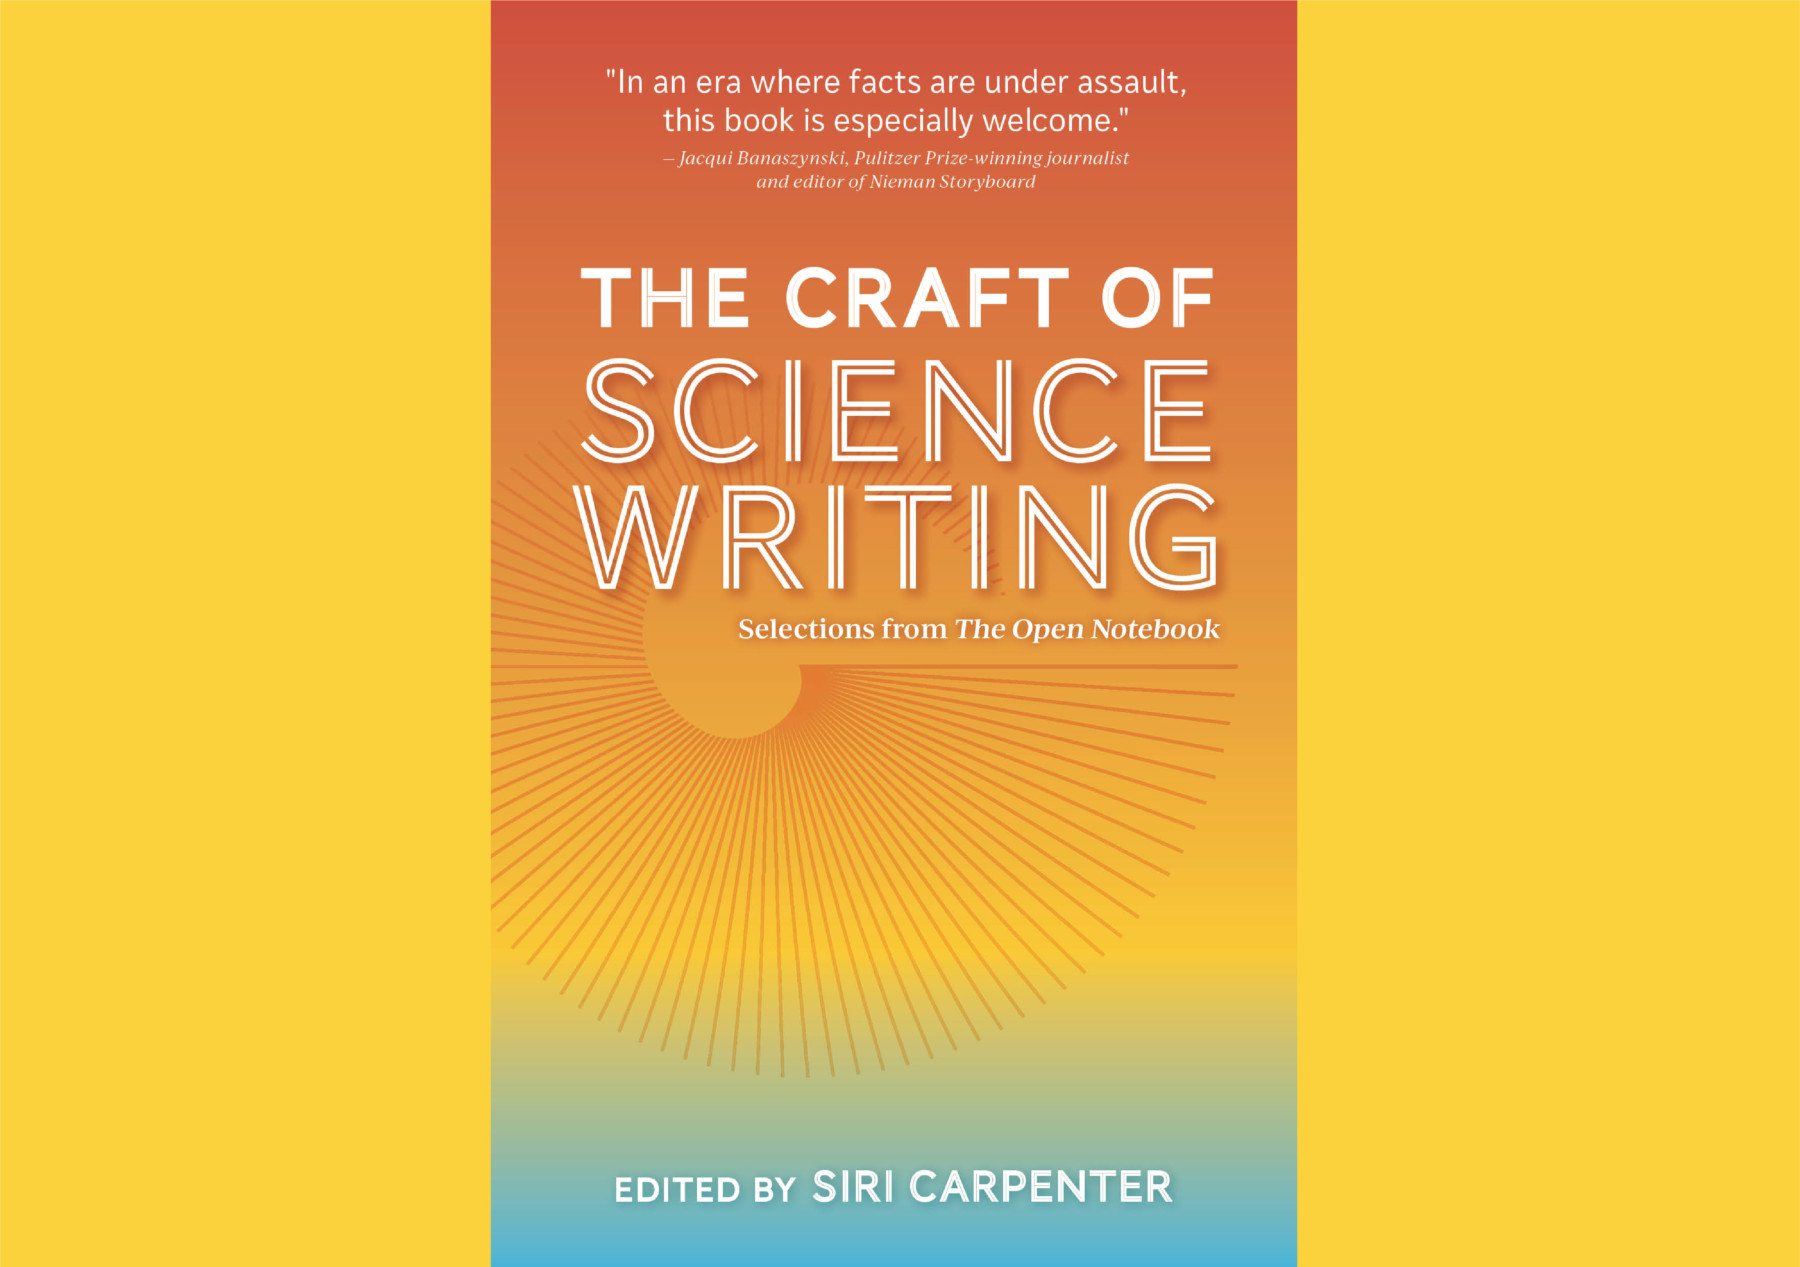 The Craft of Science Writing